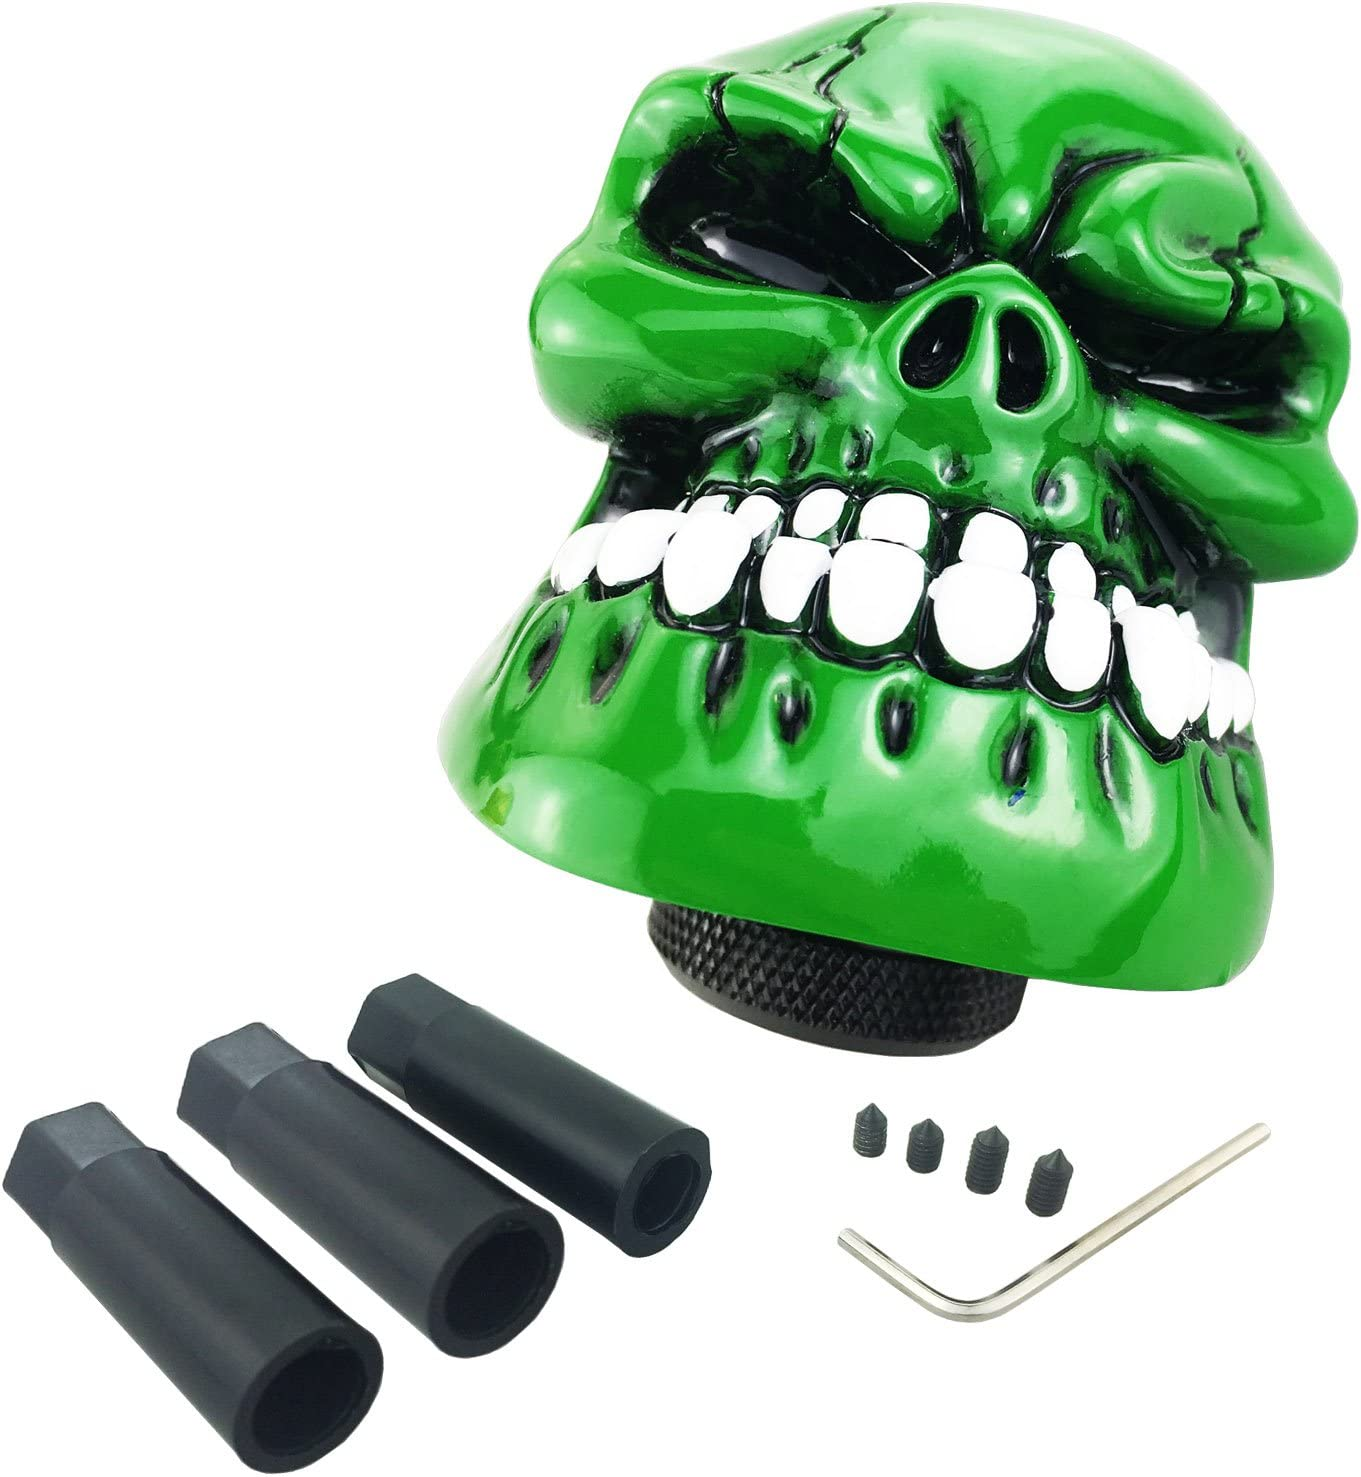 Arenbel Skull Shifter Knob Gear Stick Shifting Shift Knobs Lever Handle fit Most Universal Manual Automatic Vehicle Red